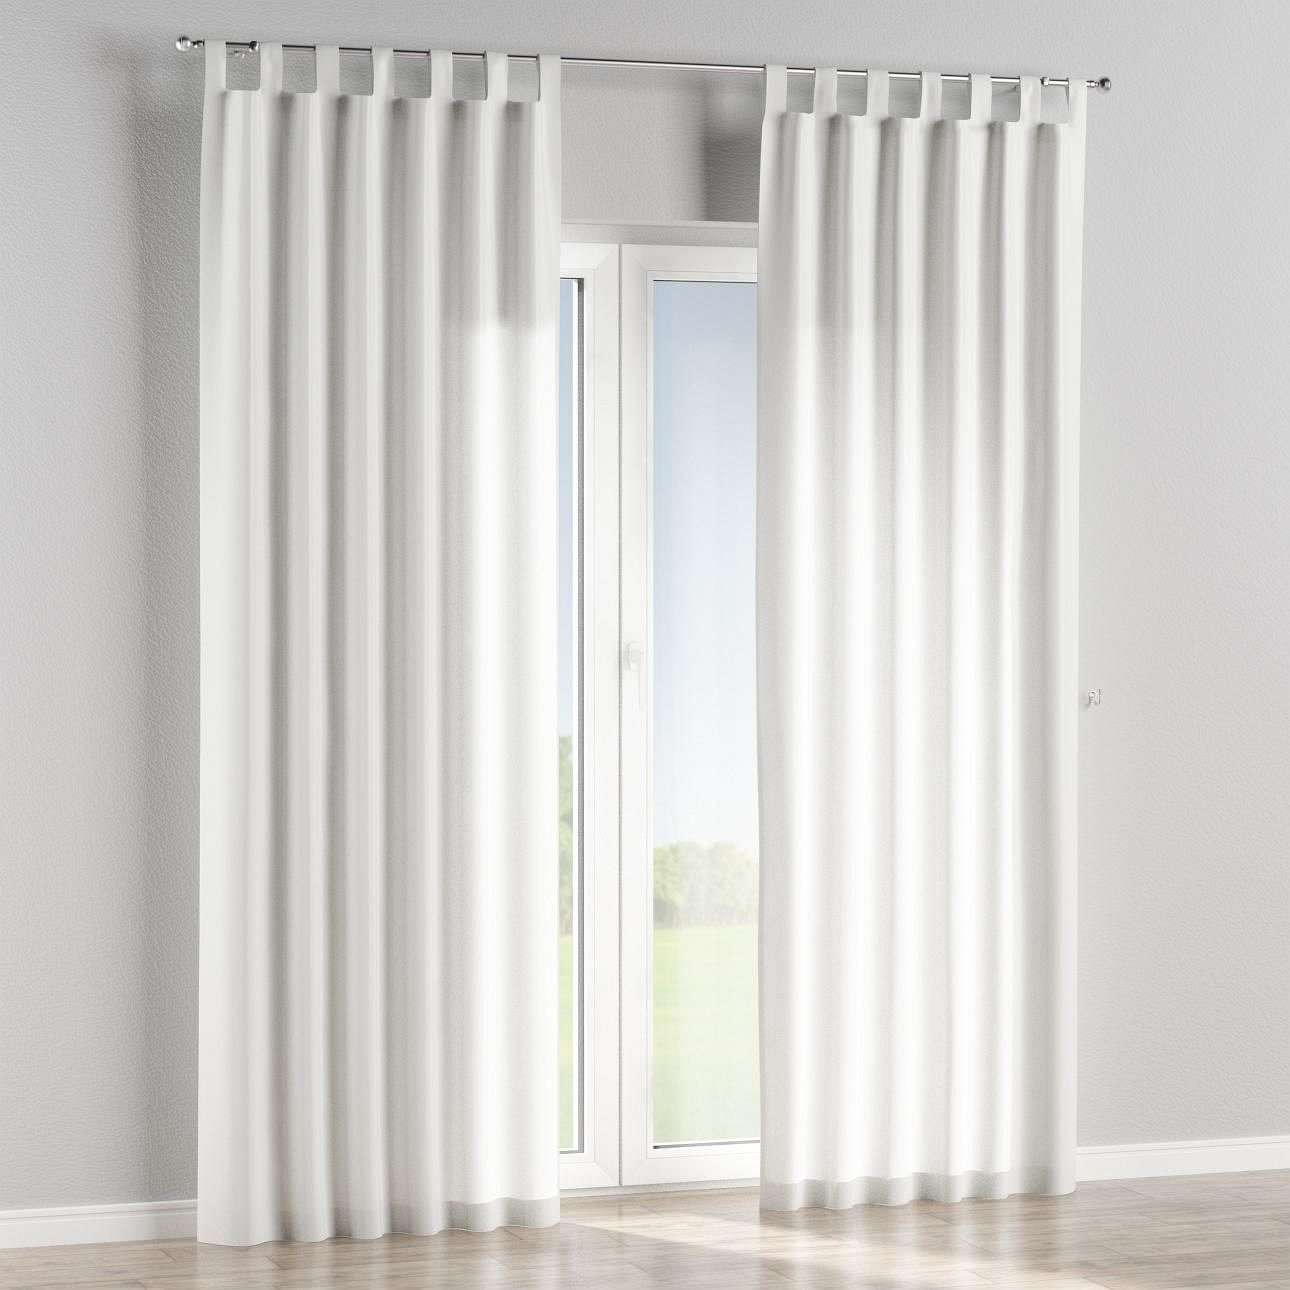 Tab top curtains in collection SALE, fabric: 103-98